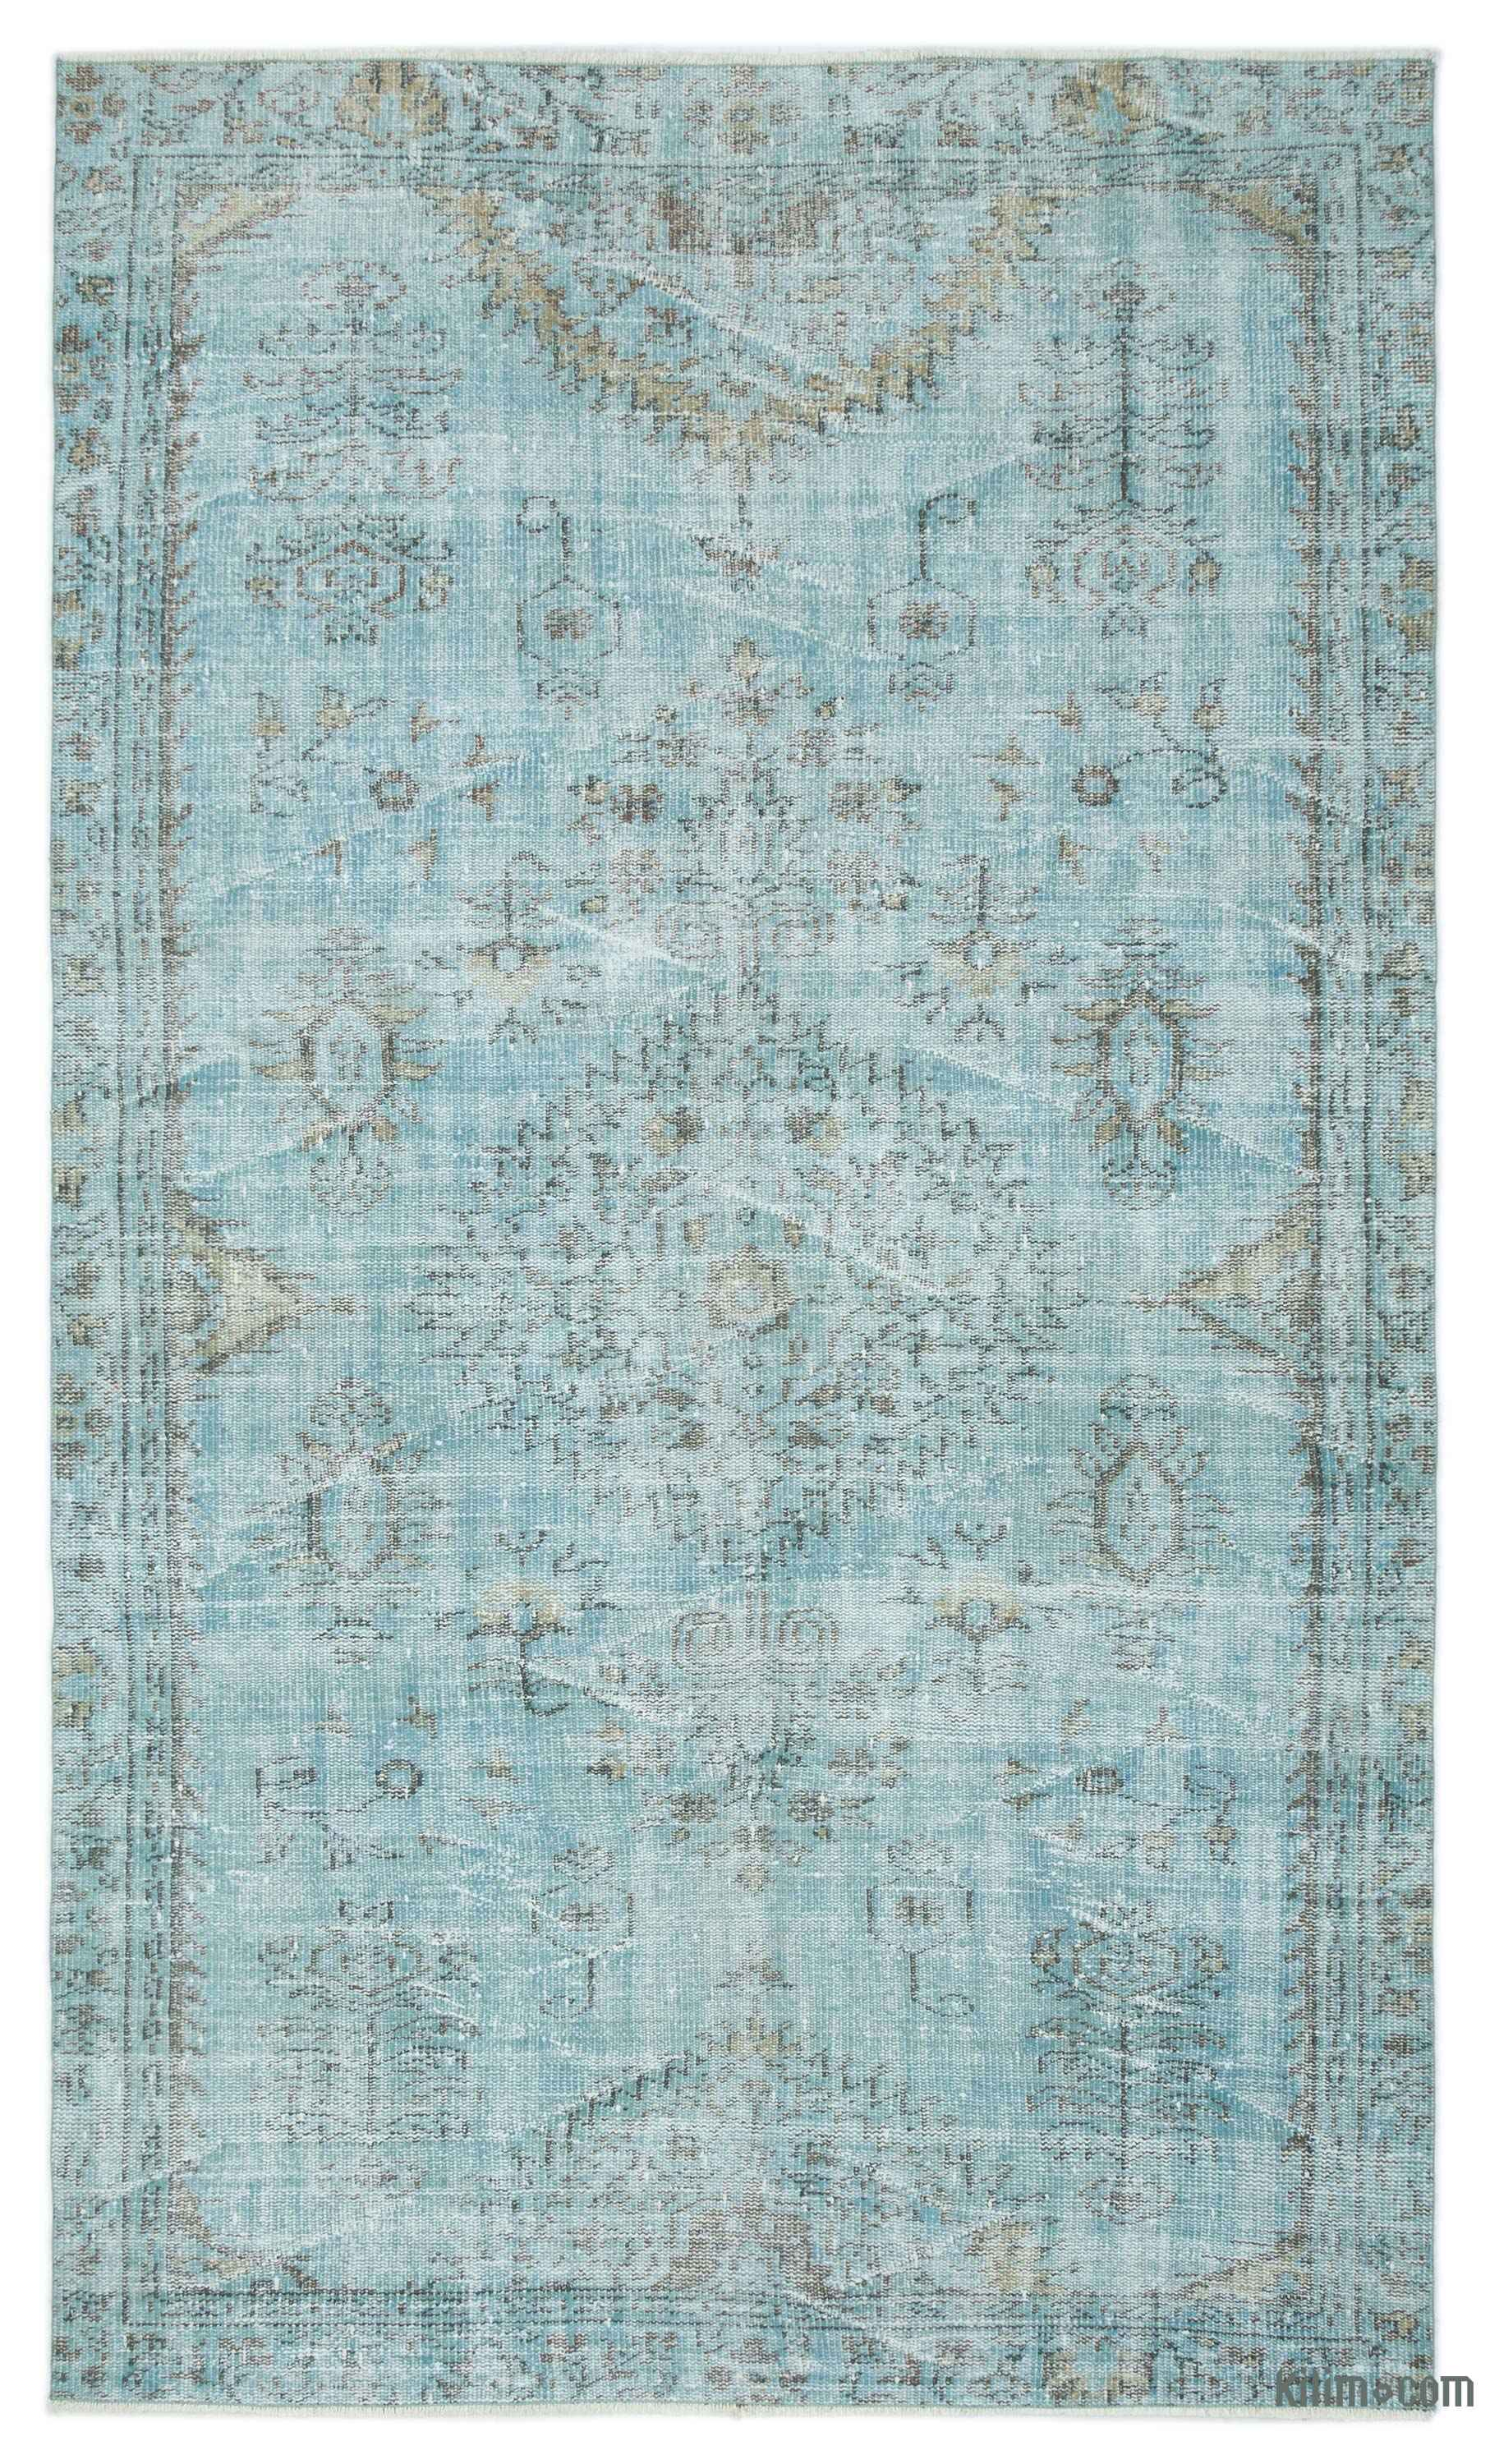 light beige blue rugs x brown floral vintage solid rug living cream of this navy and esalerugs gray out top round shag room new white adana teal world throw area safavieh patina colored